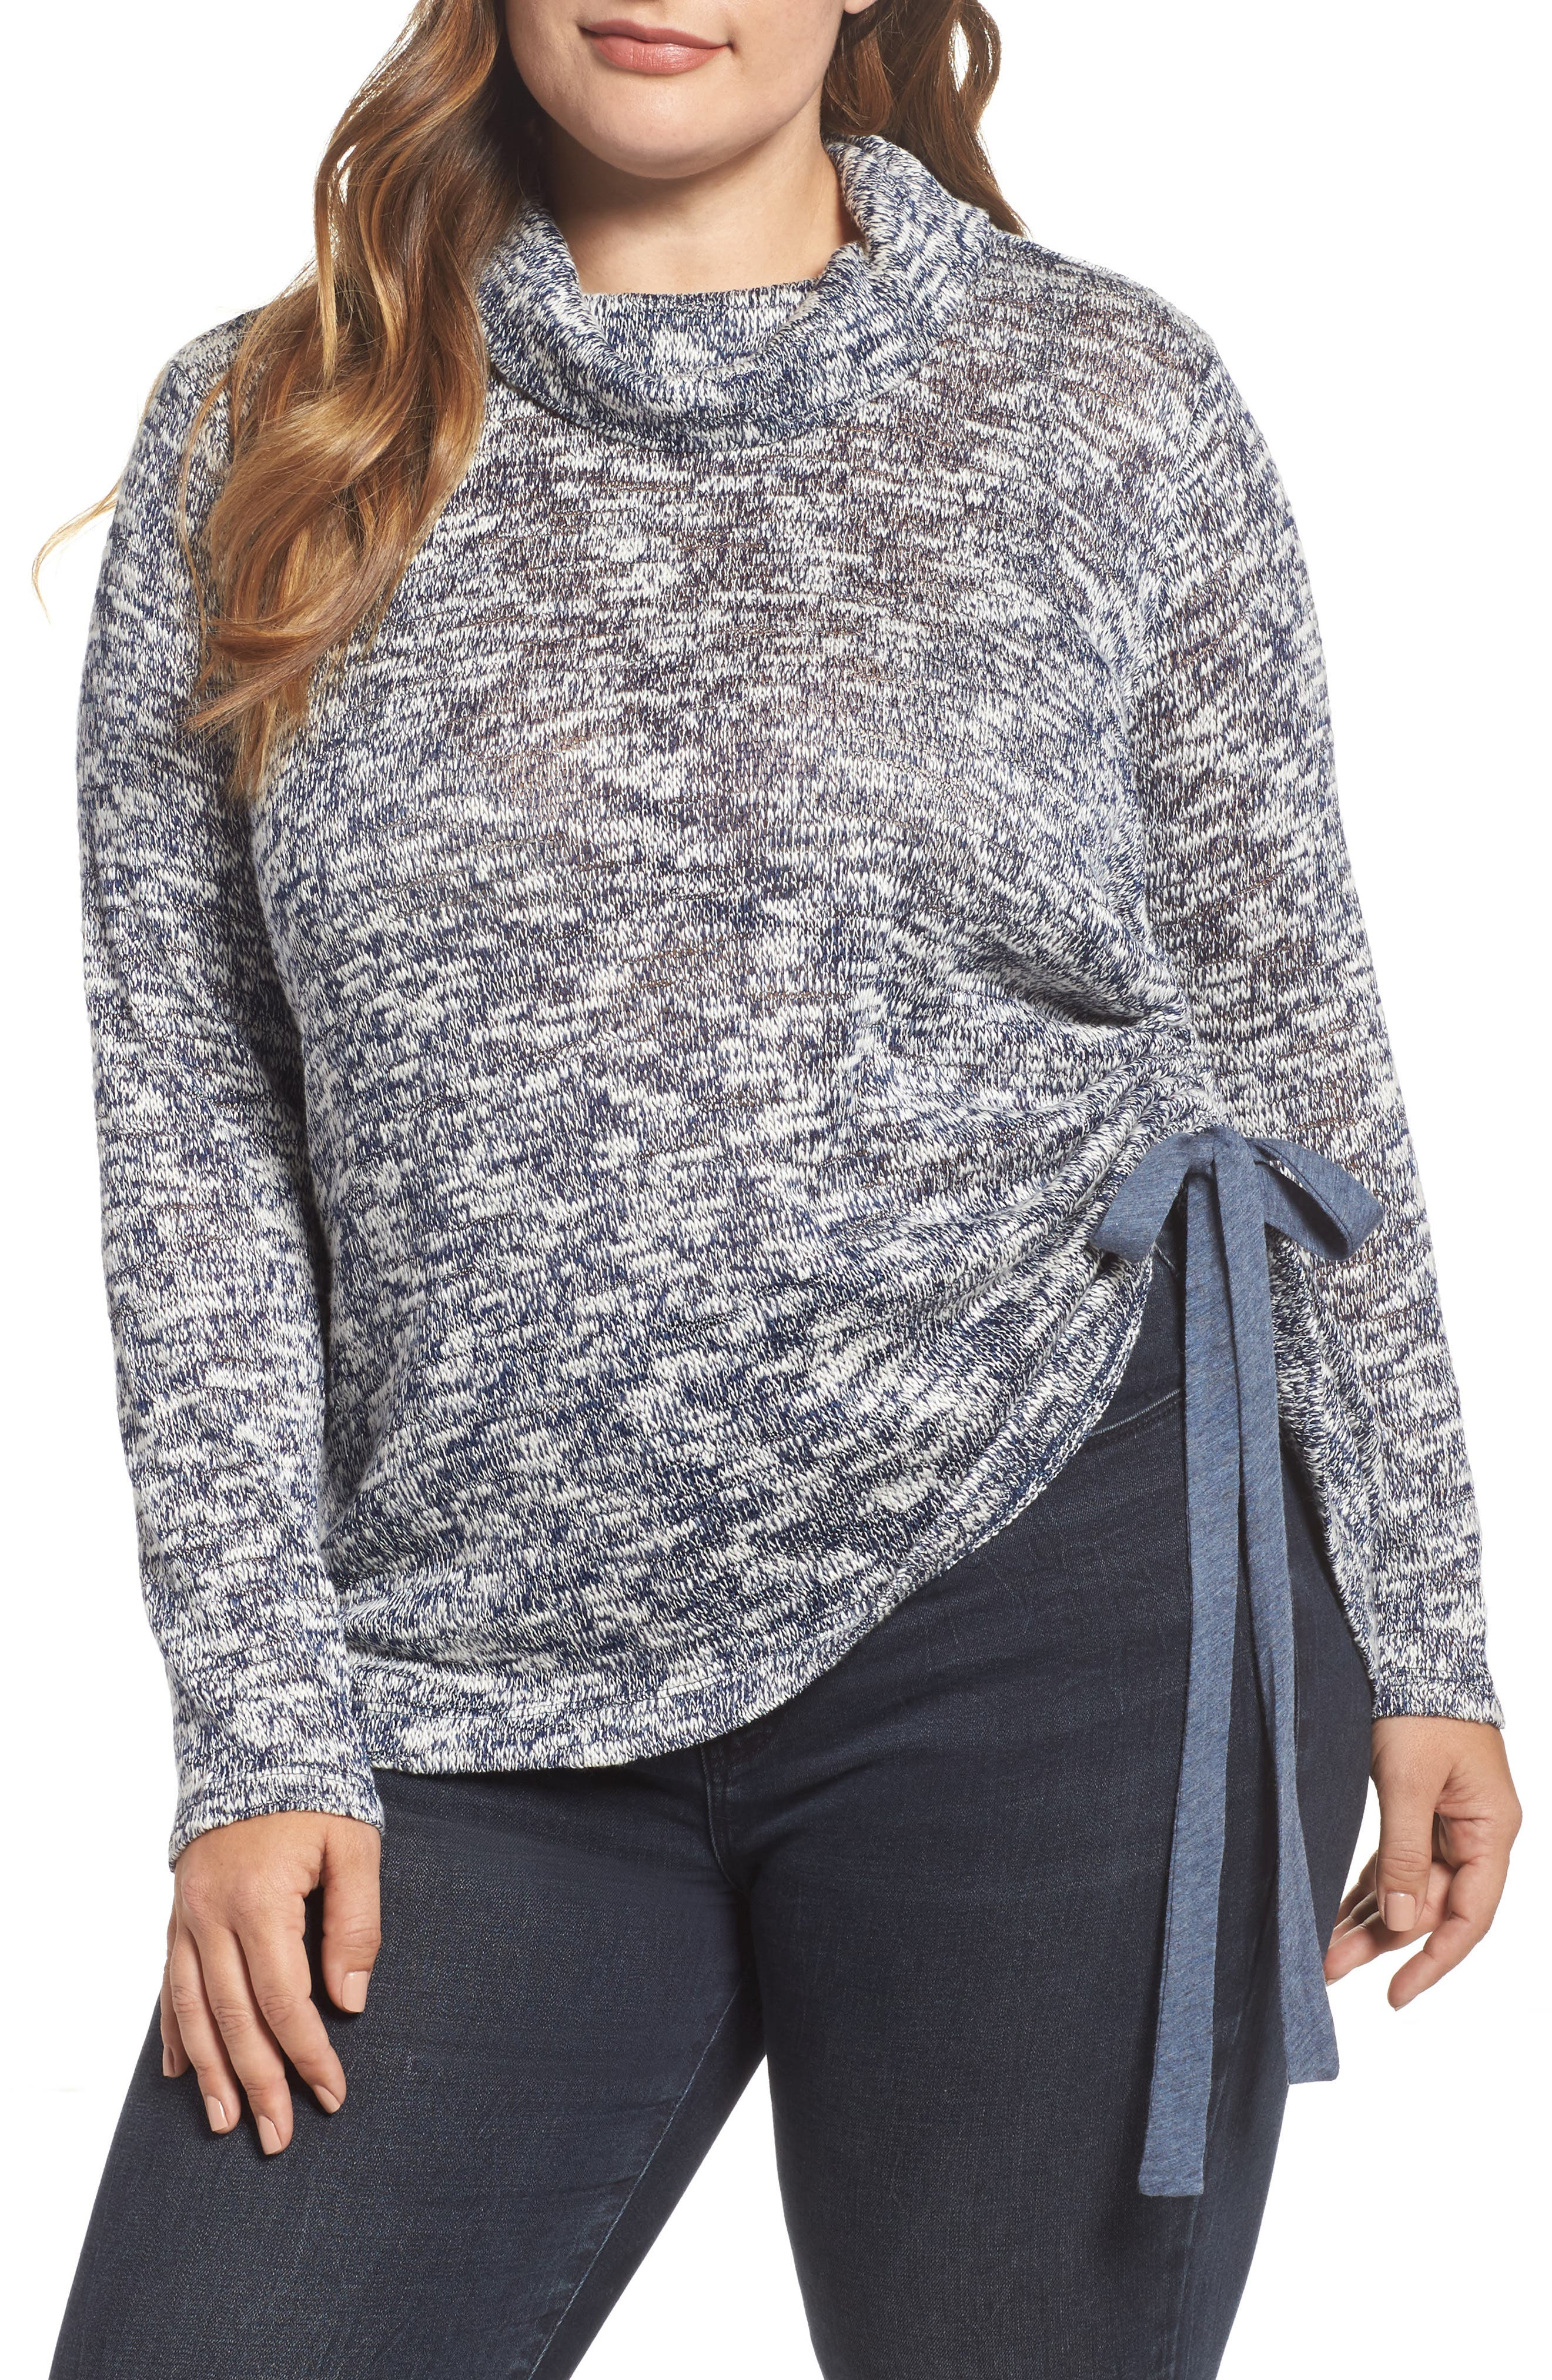 Alternate Image 1 Selected - Two by Vince Camuto Drawstring Side Sweater (Plus Size)